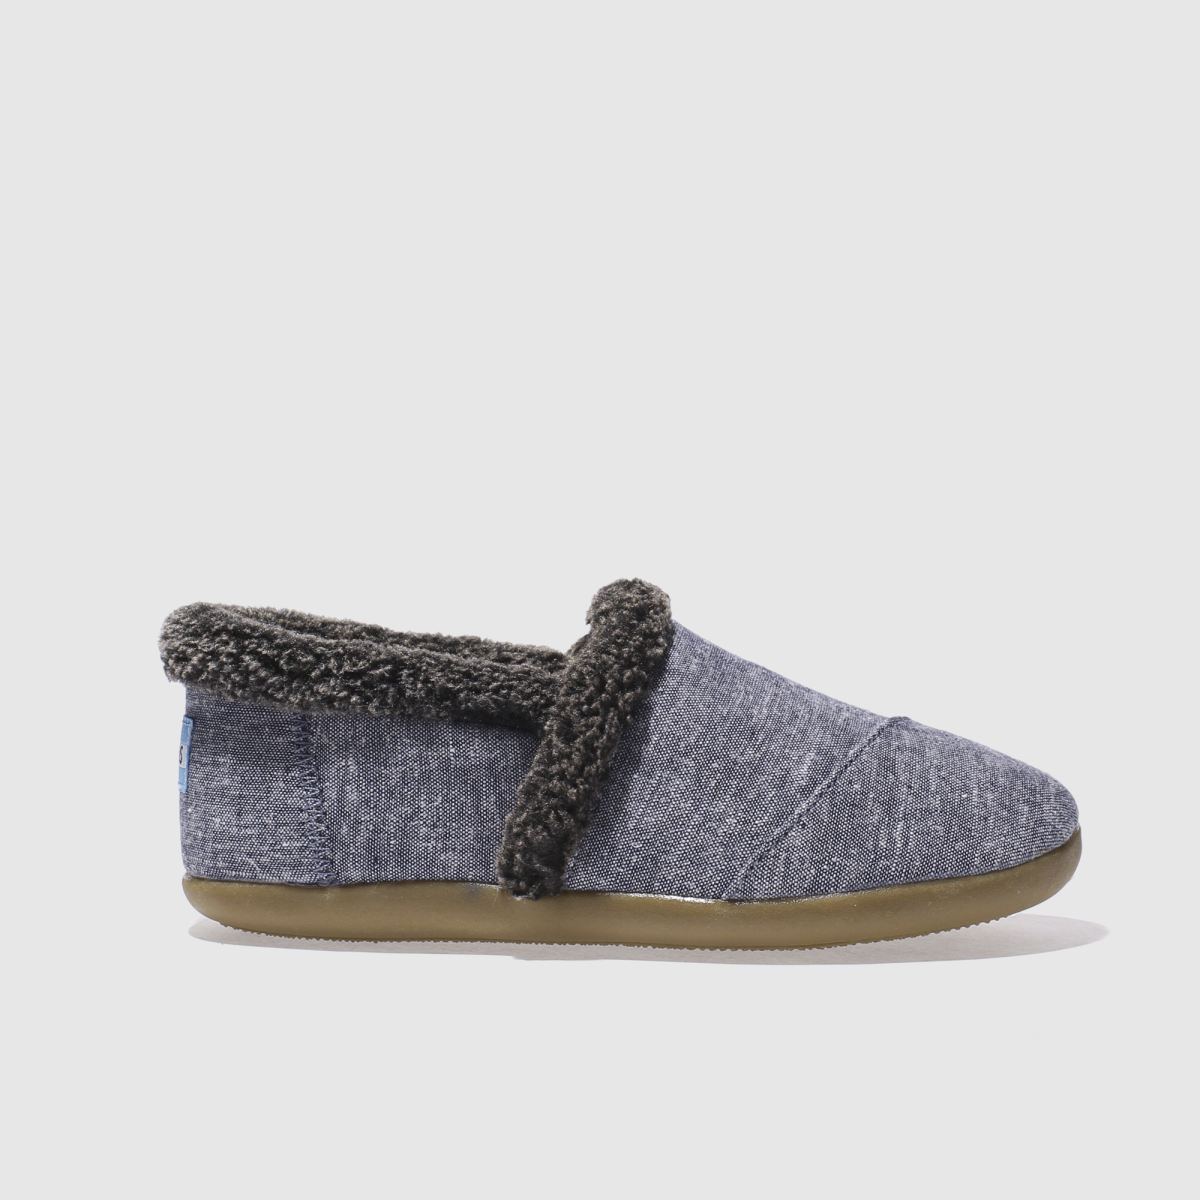 toms navy house slipper Boys Youth Shoes